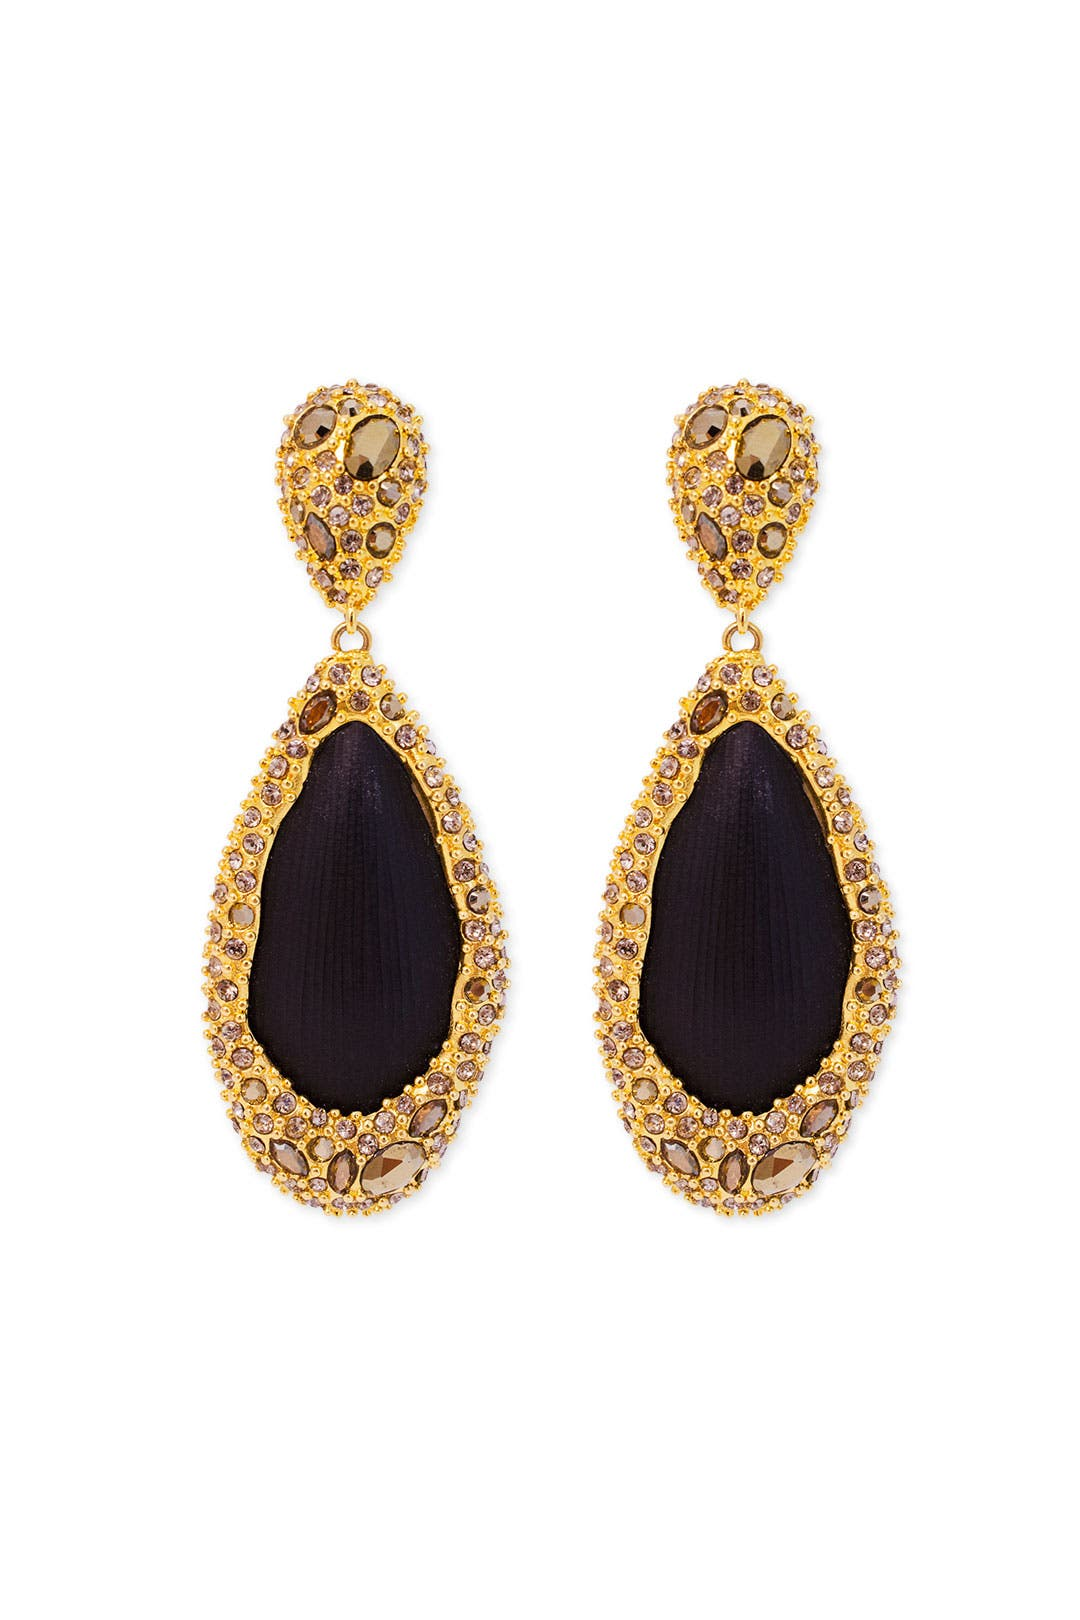 Drop of Obsidian Earrings by Alexis Bittar